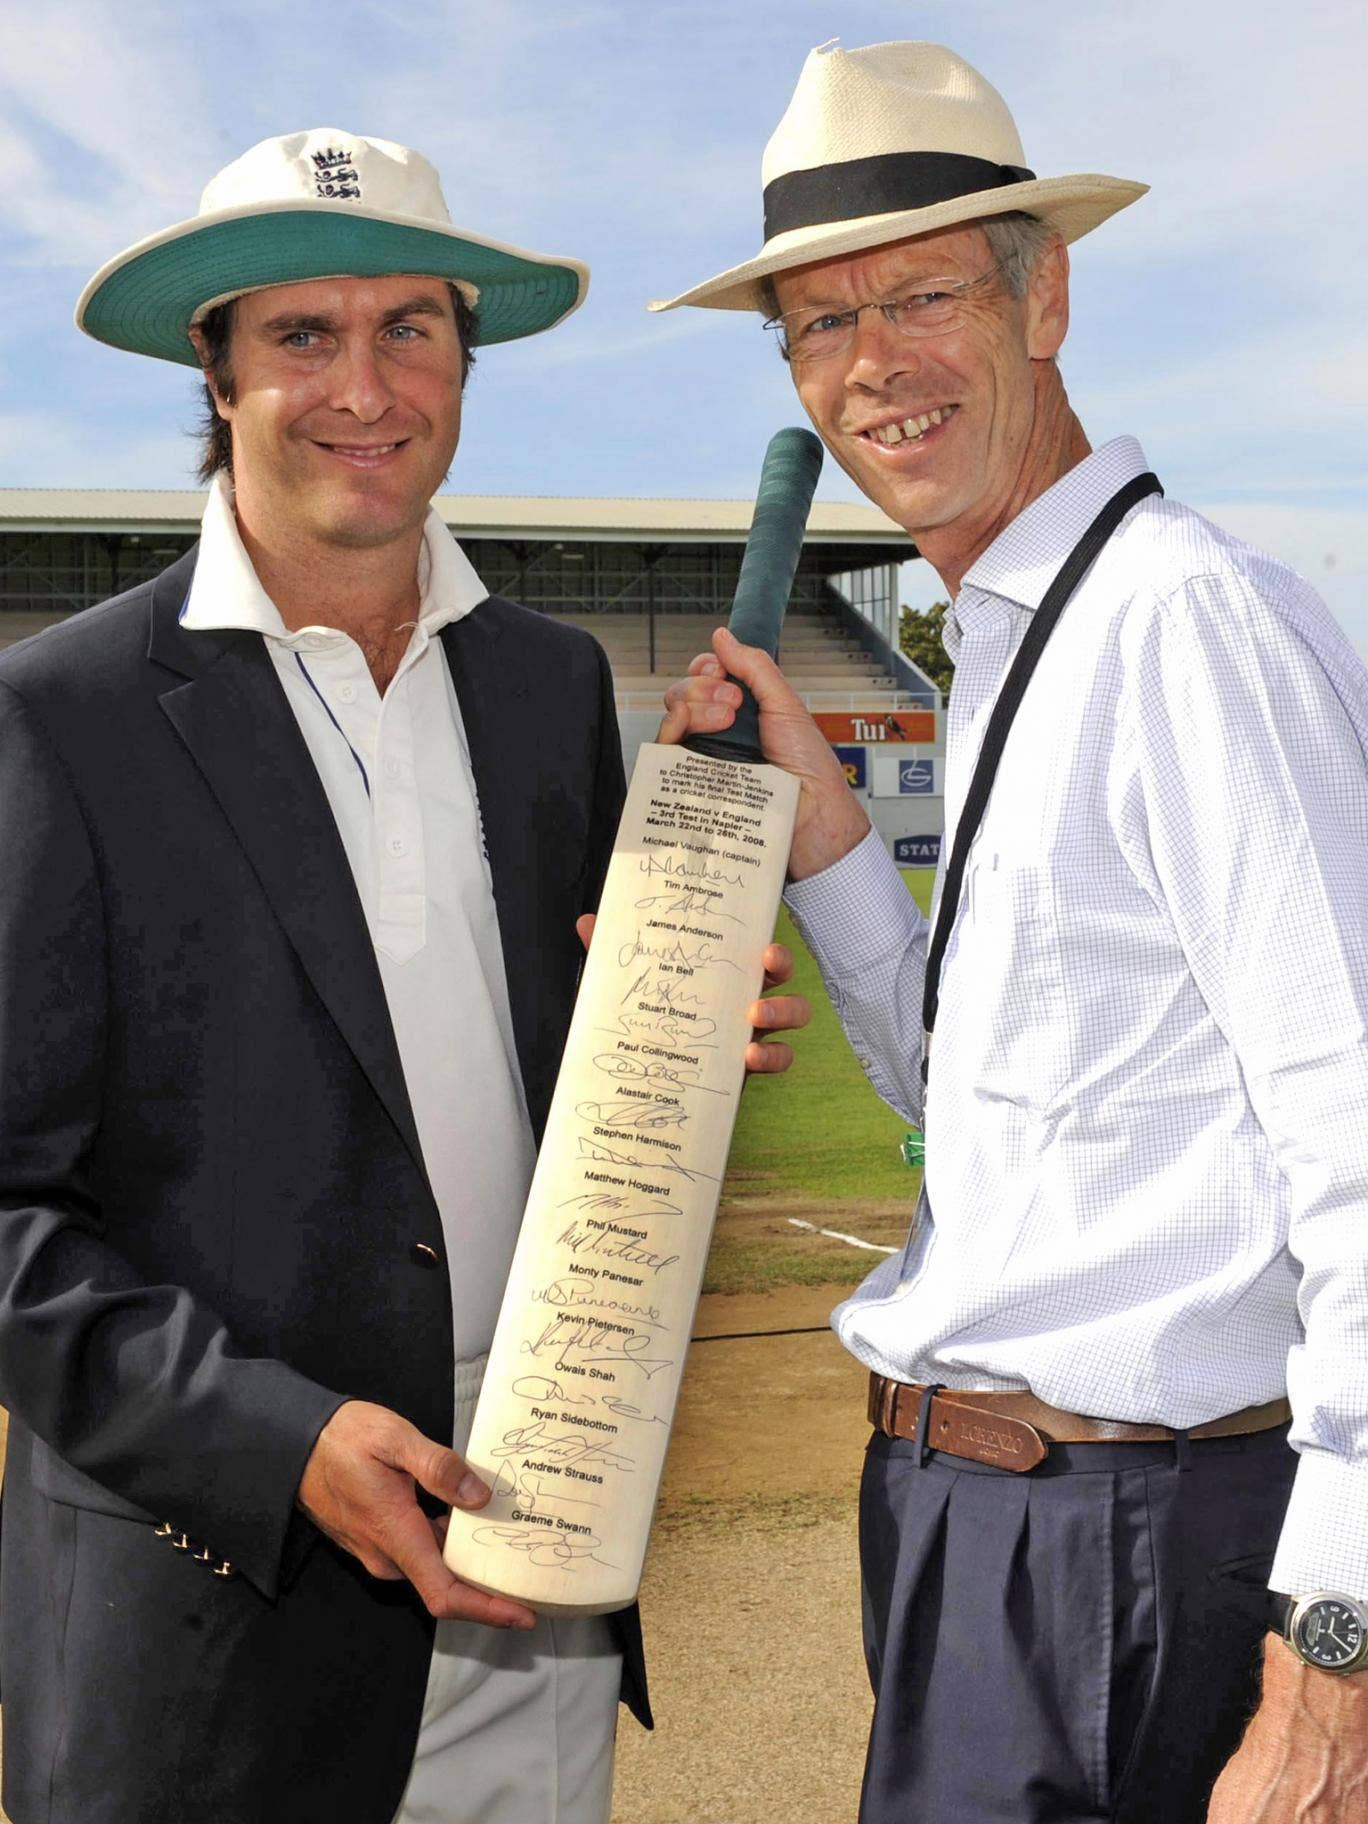 England captain Michael Vaughan presents a special bat to Christopher Martin-Jenkins in 2008